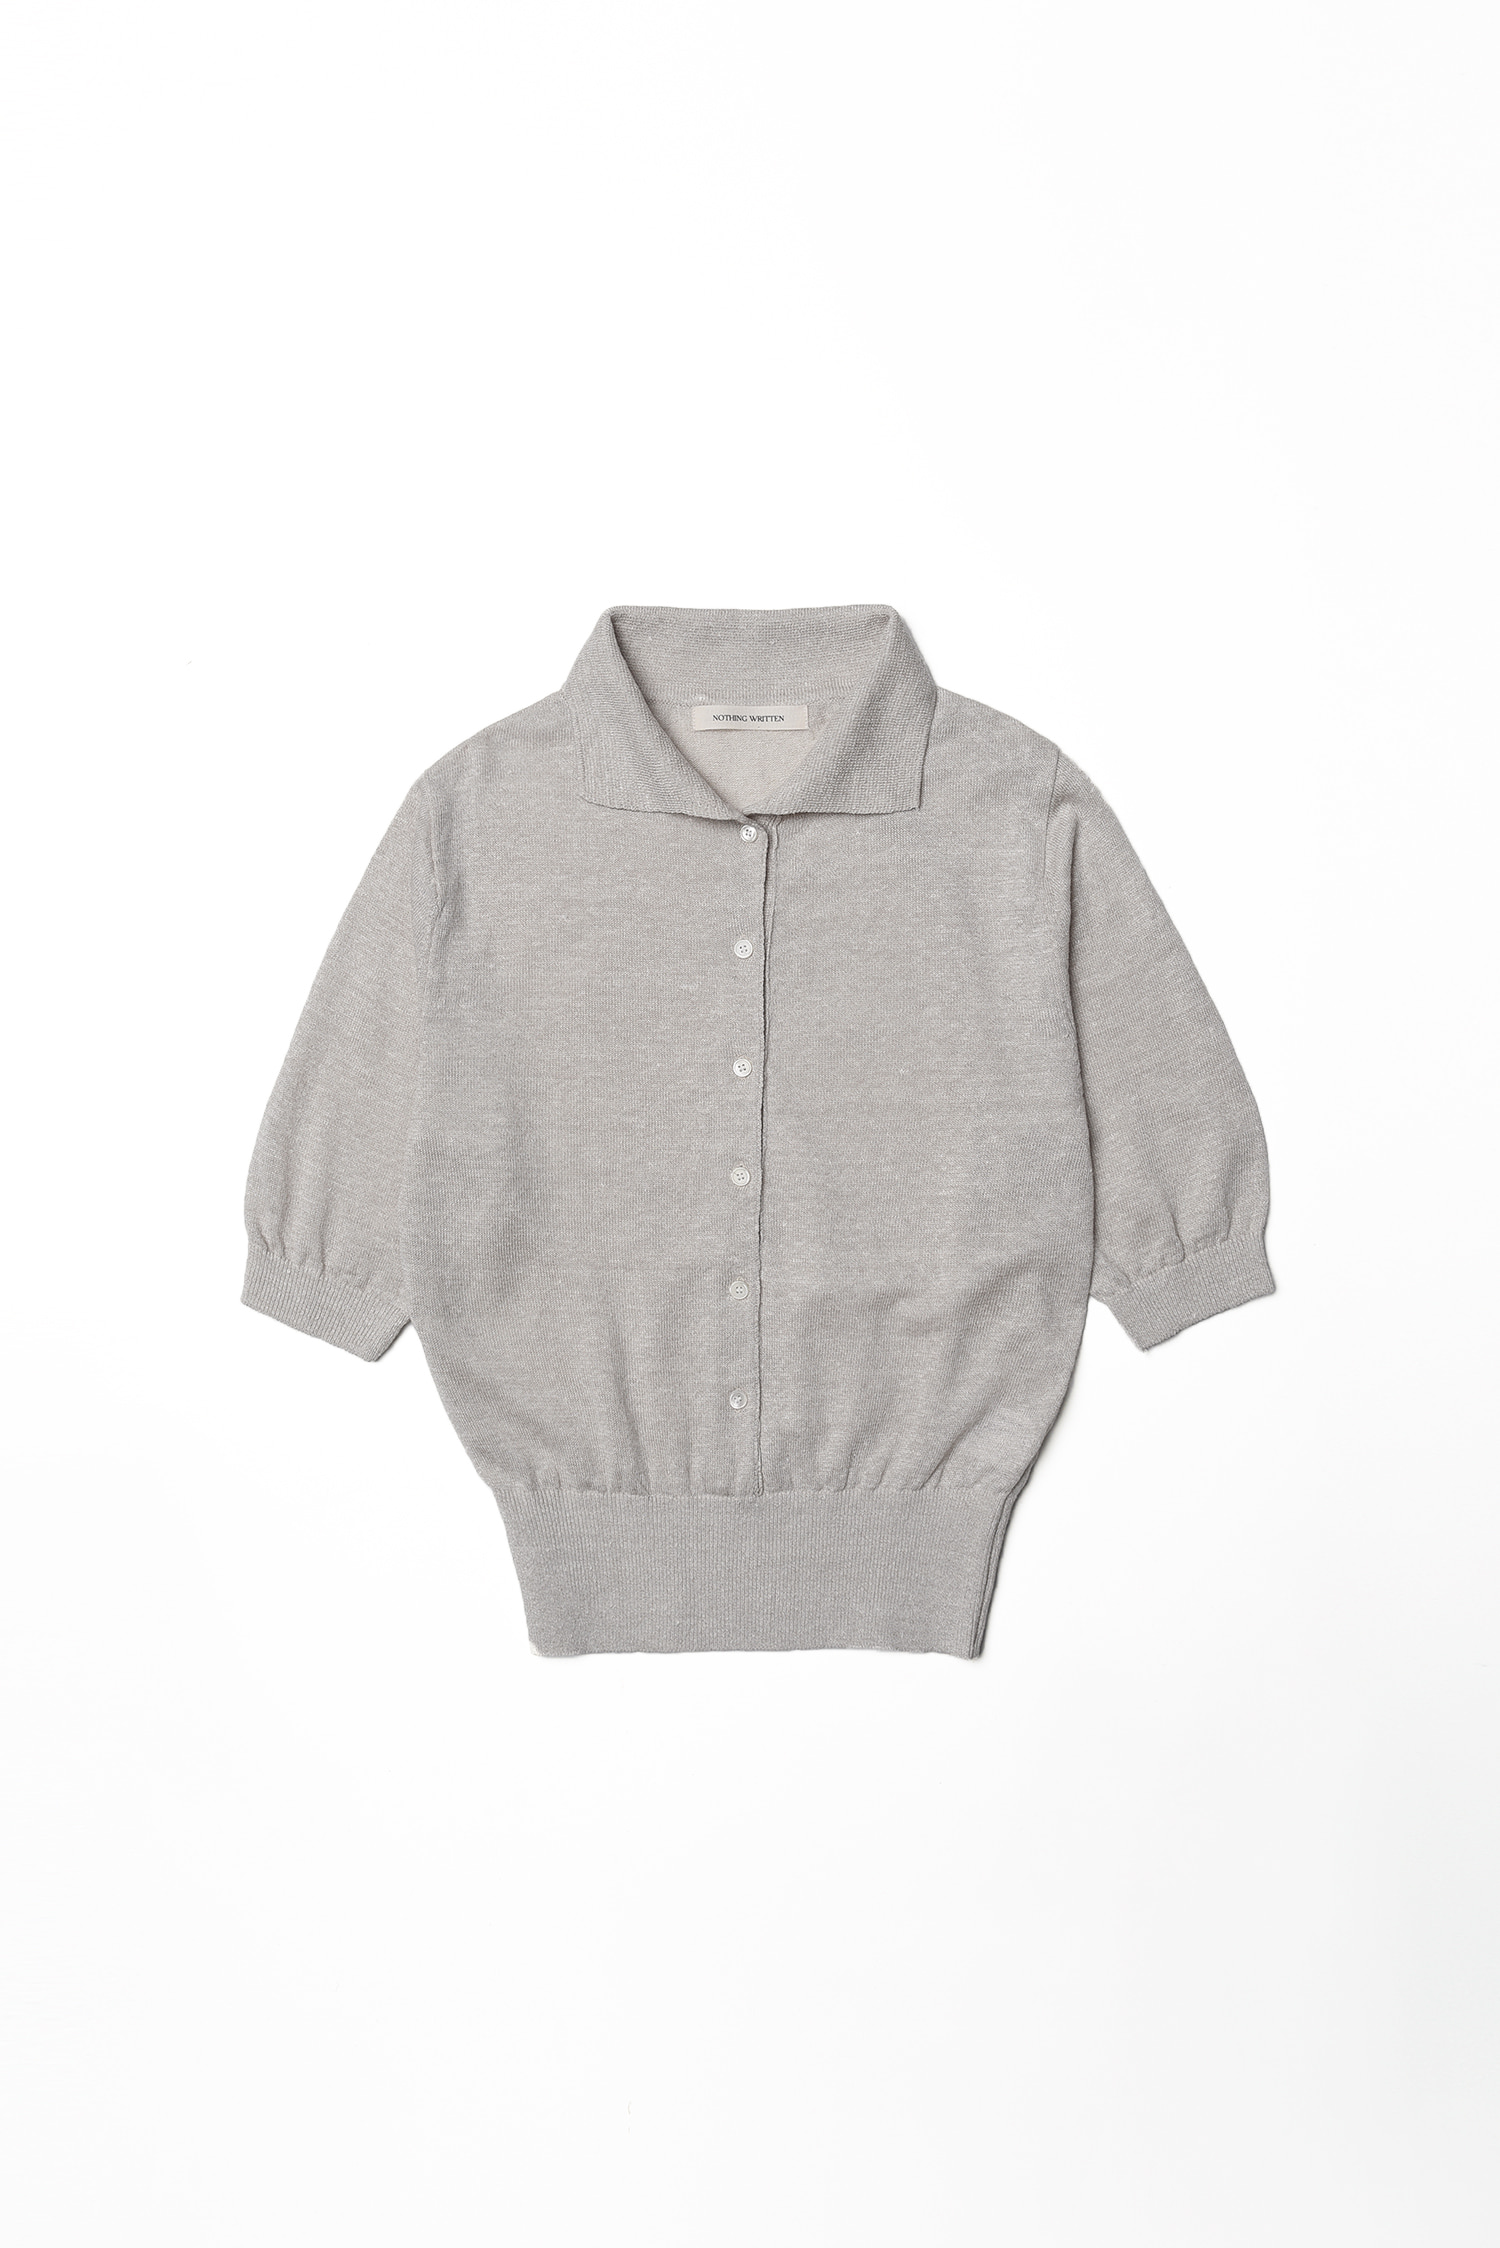 3RE-ORDER / Groth linen knit (ivory)